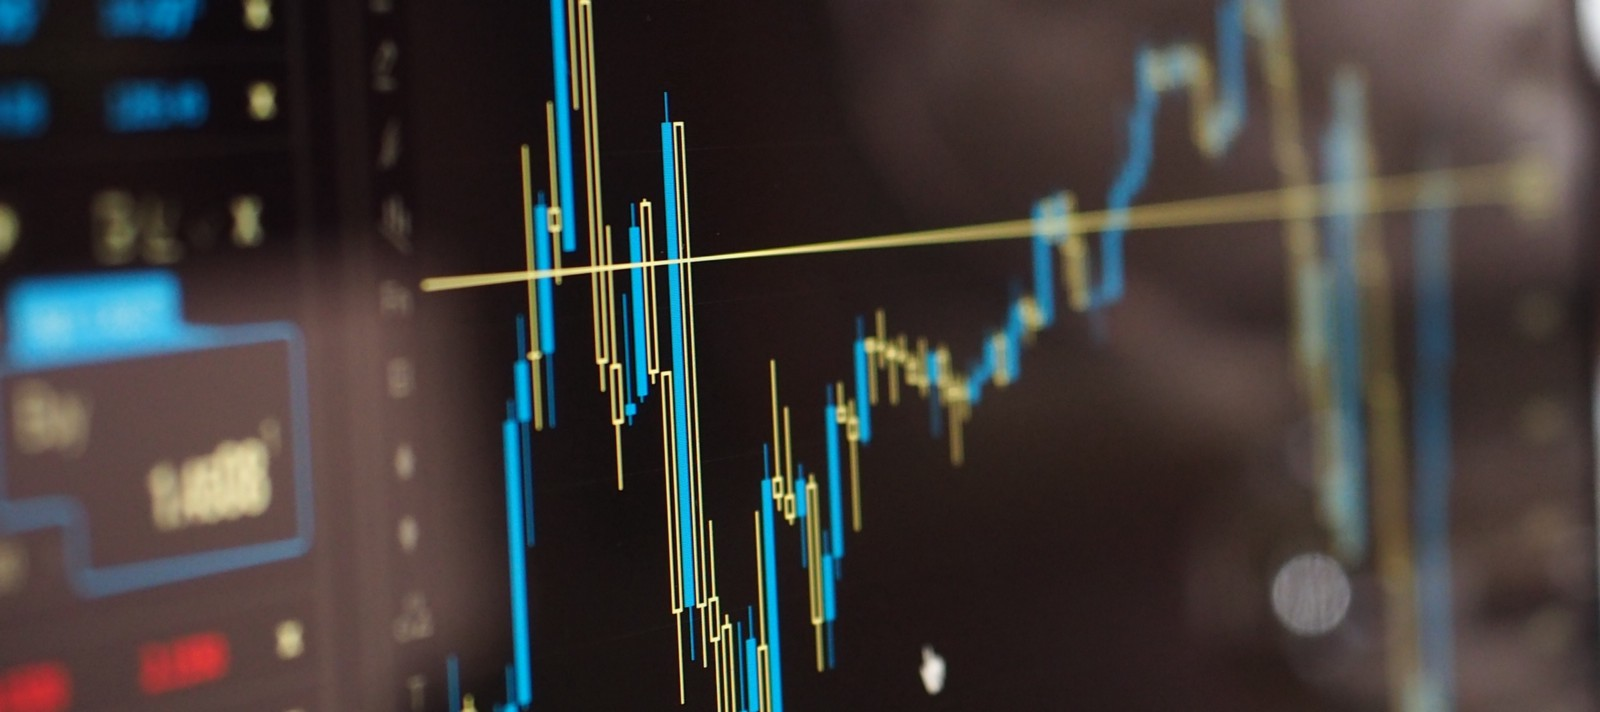 Do Technical Indicators Really Work on Cryptocurrencies? - By